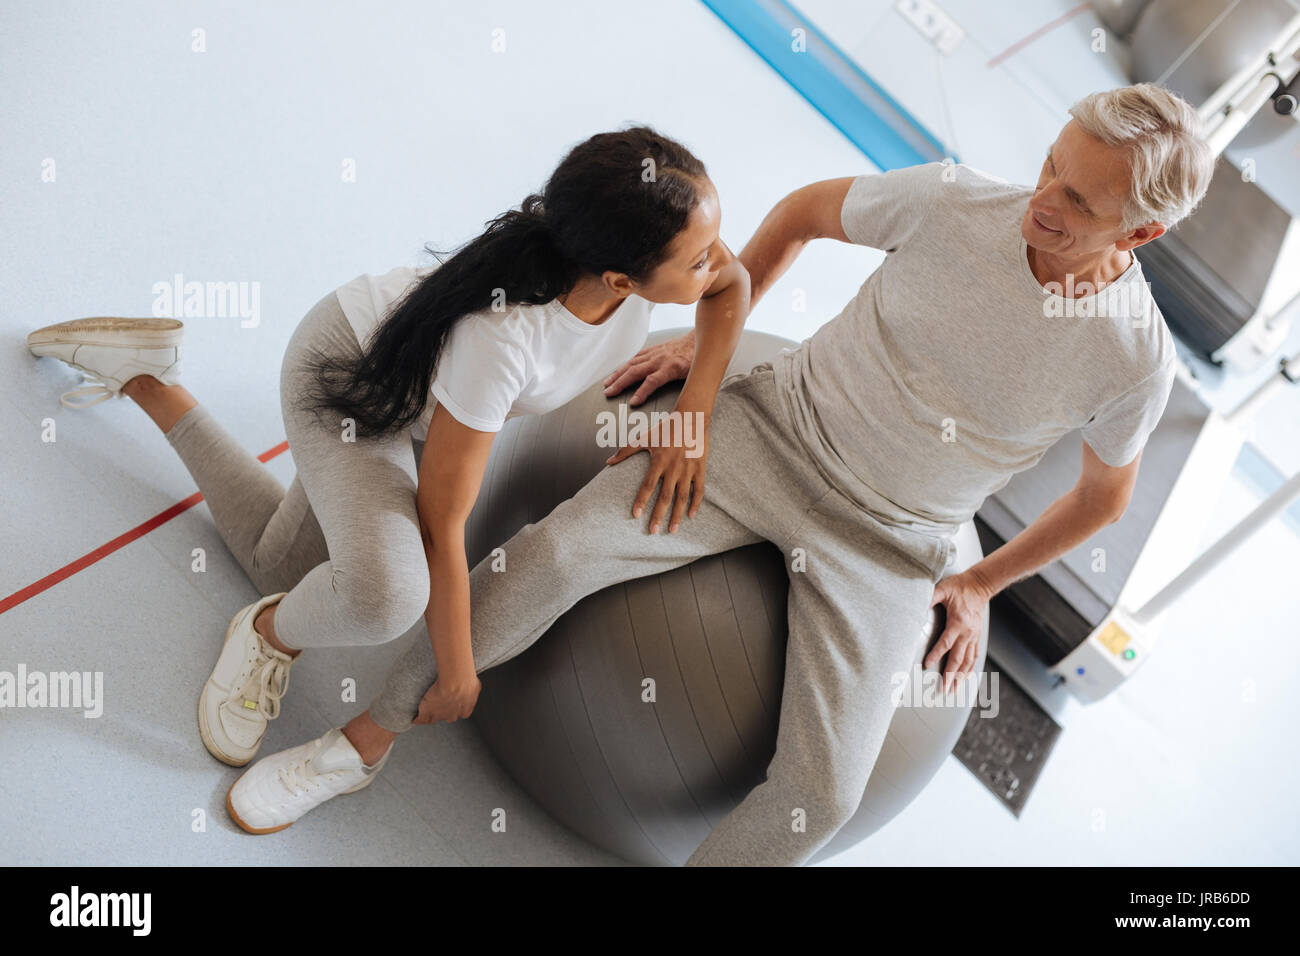 Competent coach doing massage for injured leg - Stock Image